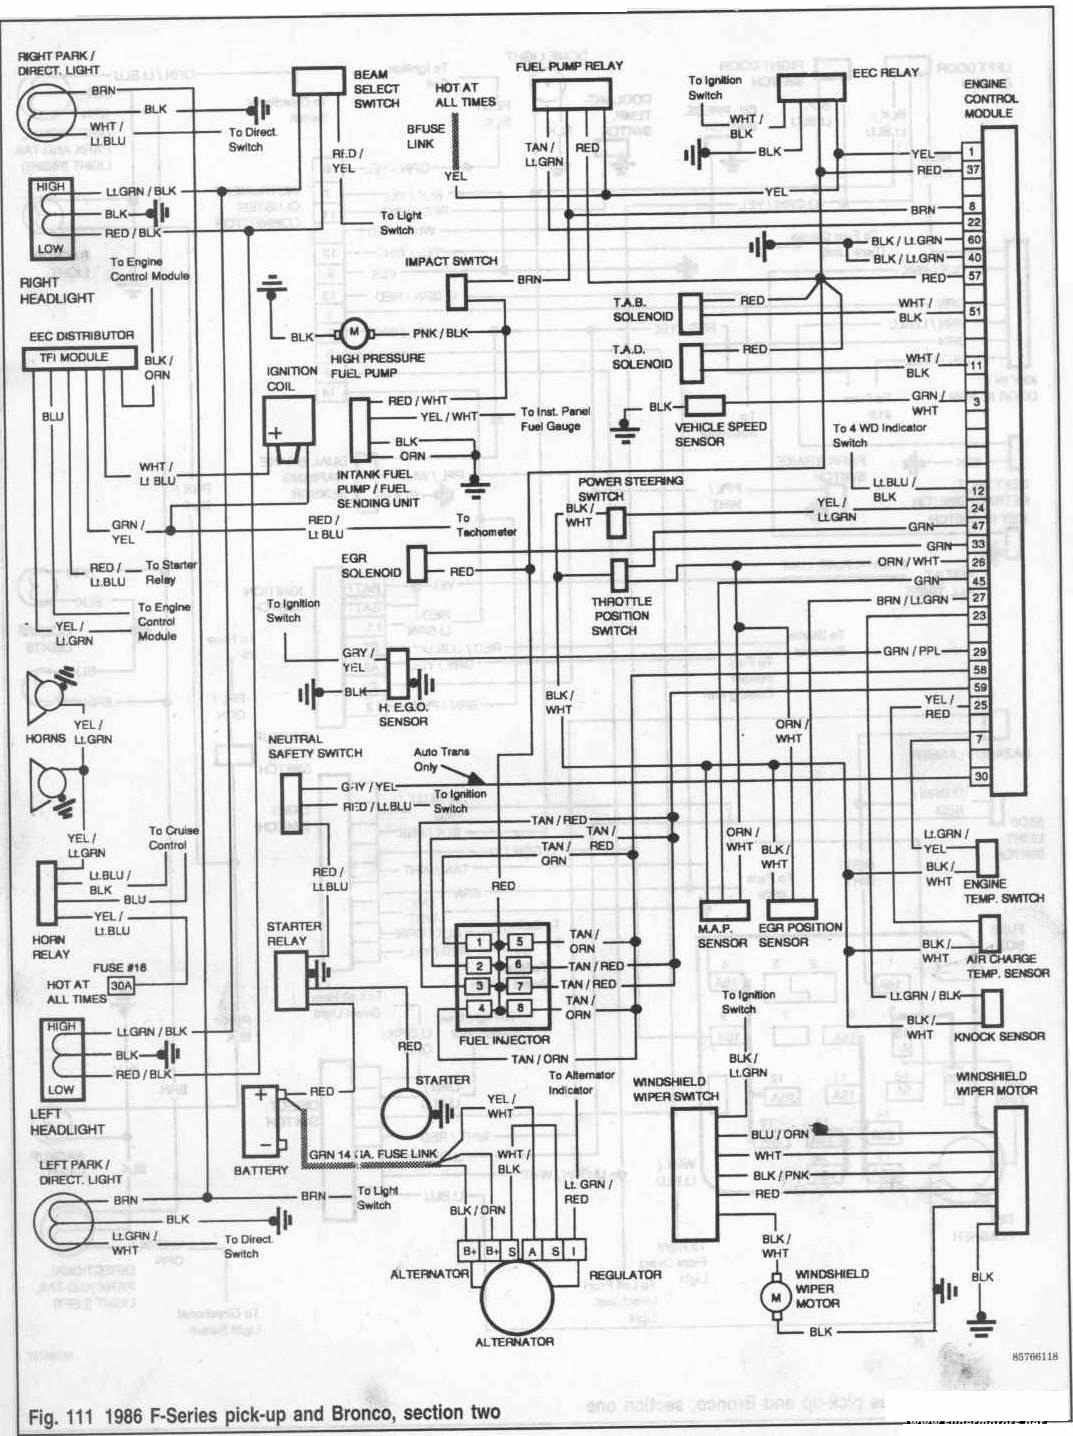 hight resolution of 86 ford bronco wiring diagram wiring diagram list 1986 ford bronco ignition wiring diagram 1986 ford bronco wiring diagram